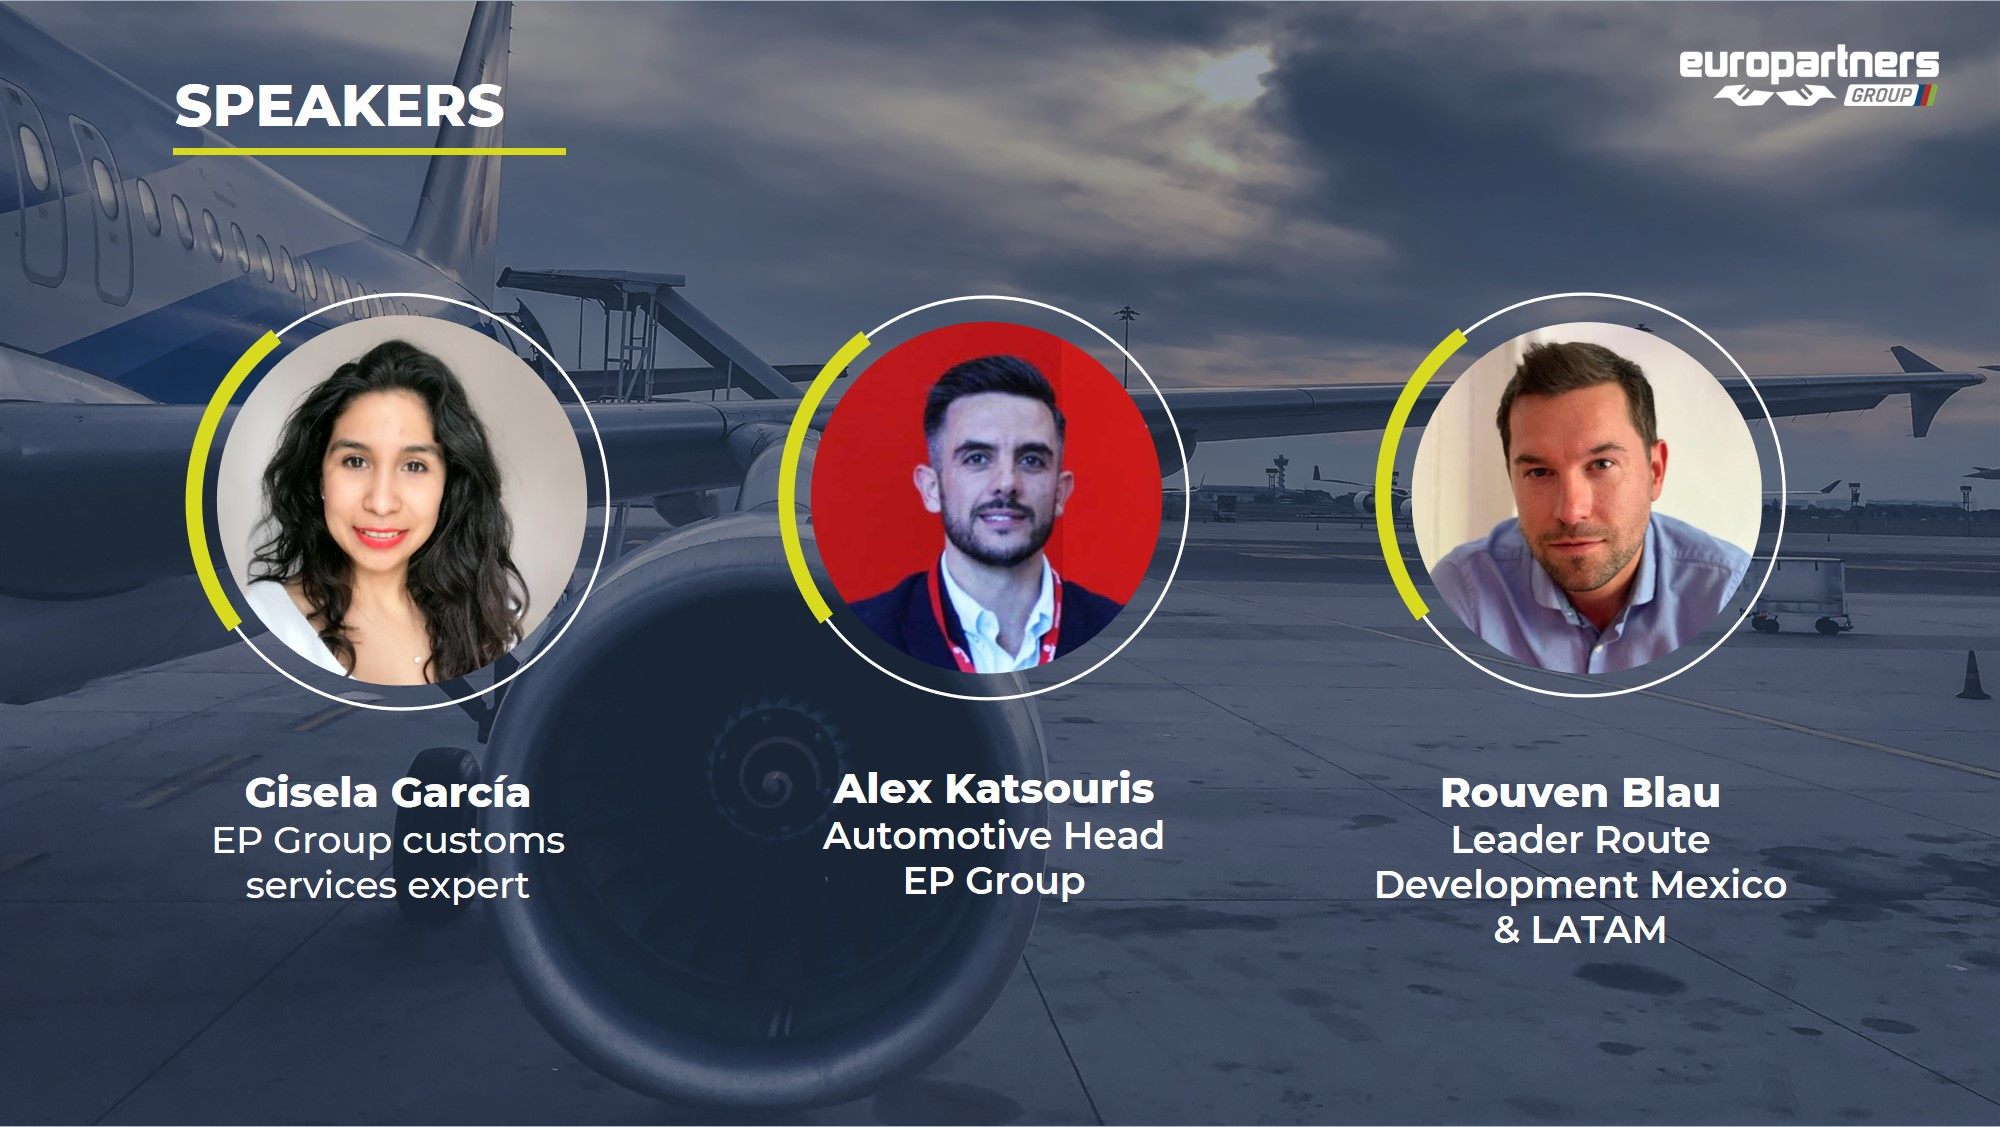 Webinar speakers were Gisela García, EP Group customs services expert, Alexander Katsouris, EP Automotive director and Rouven Blau, Leader Route development for Mexico and Latin America